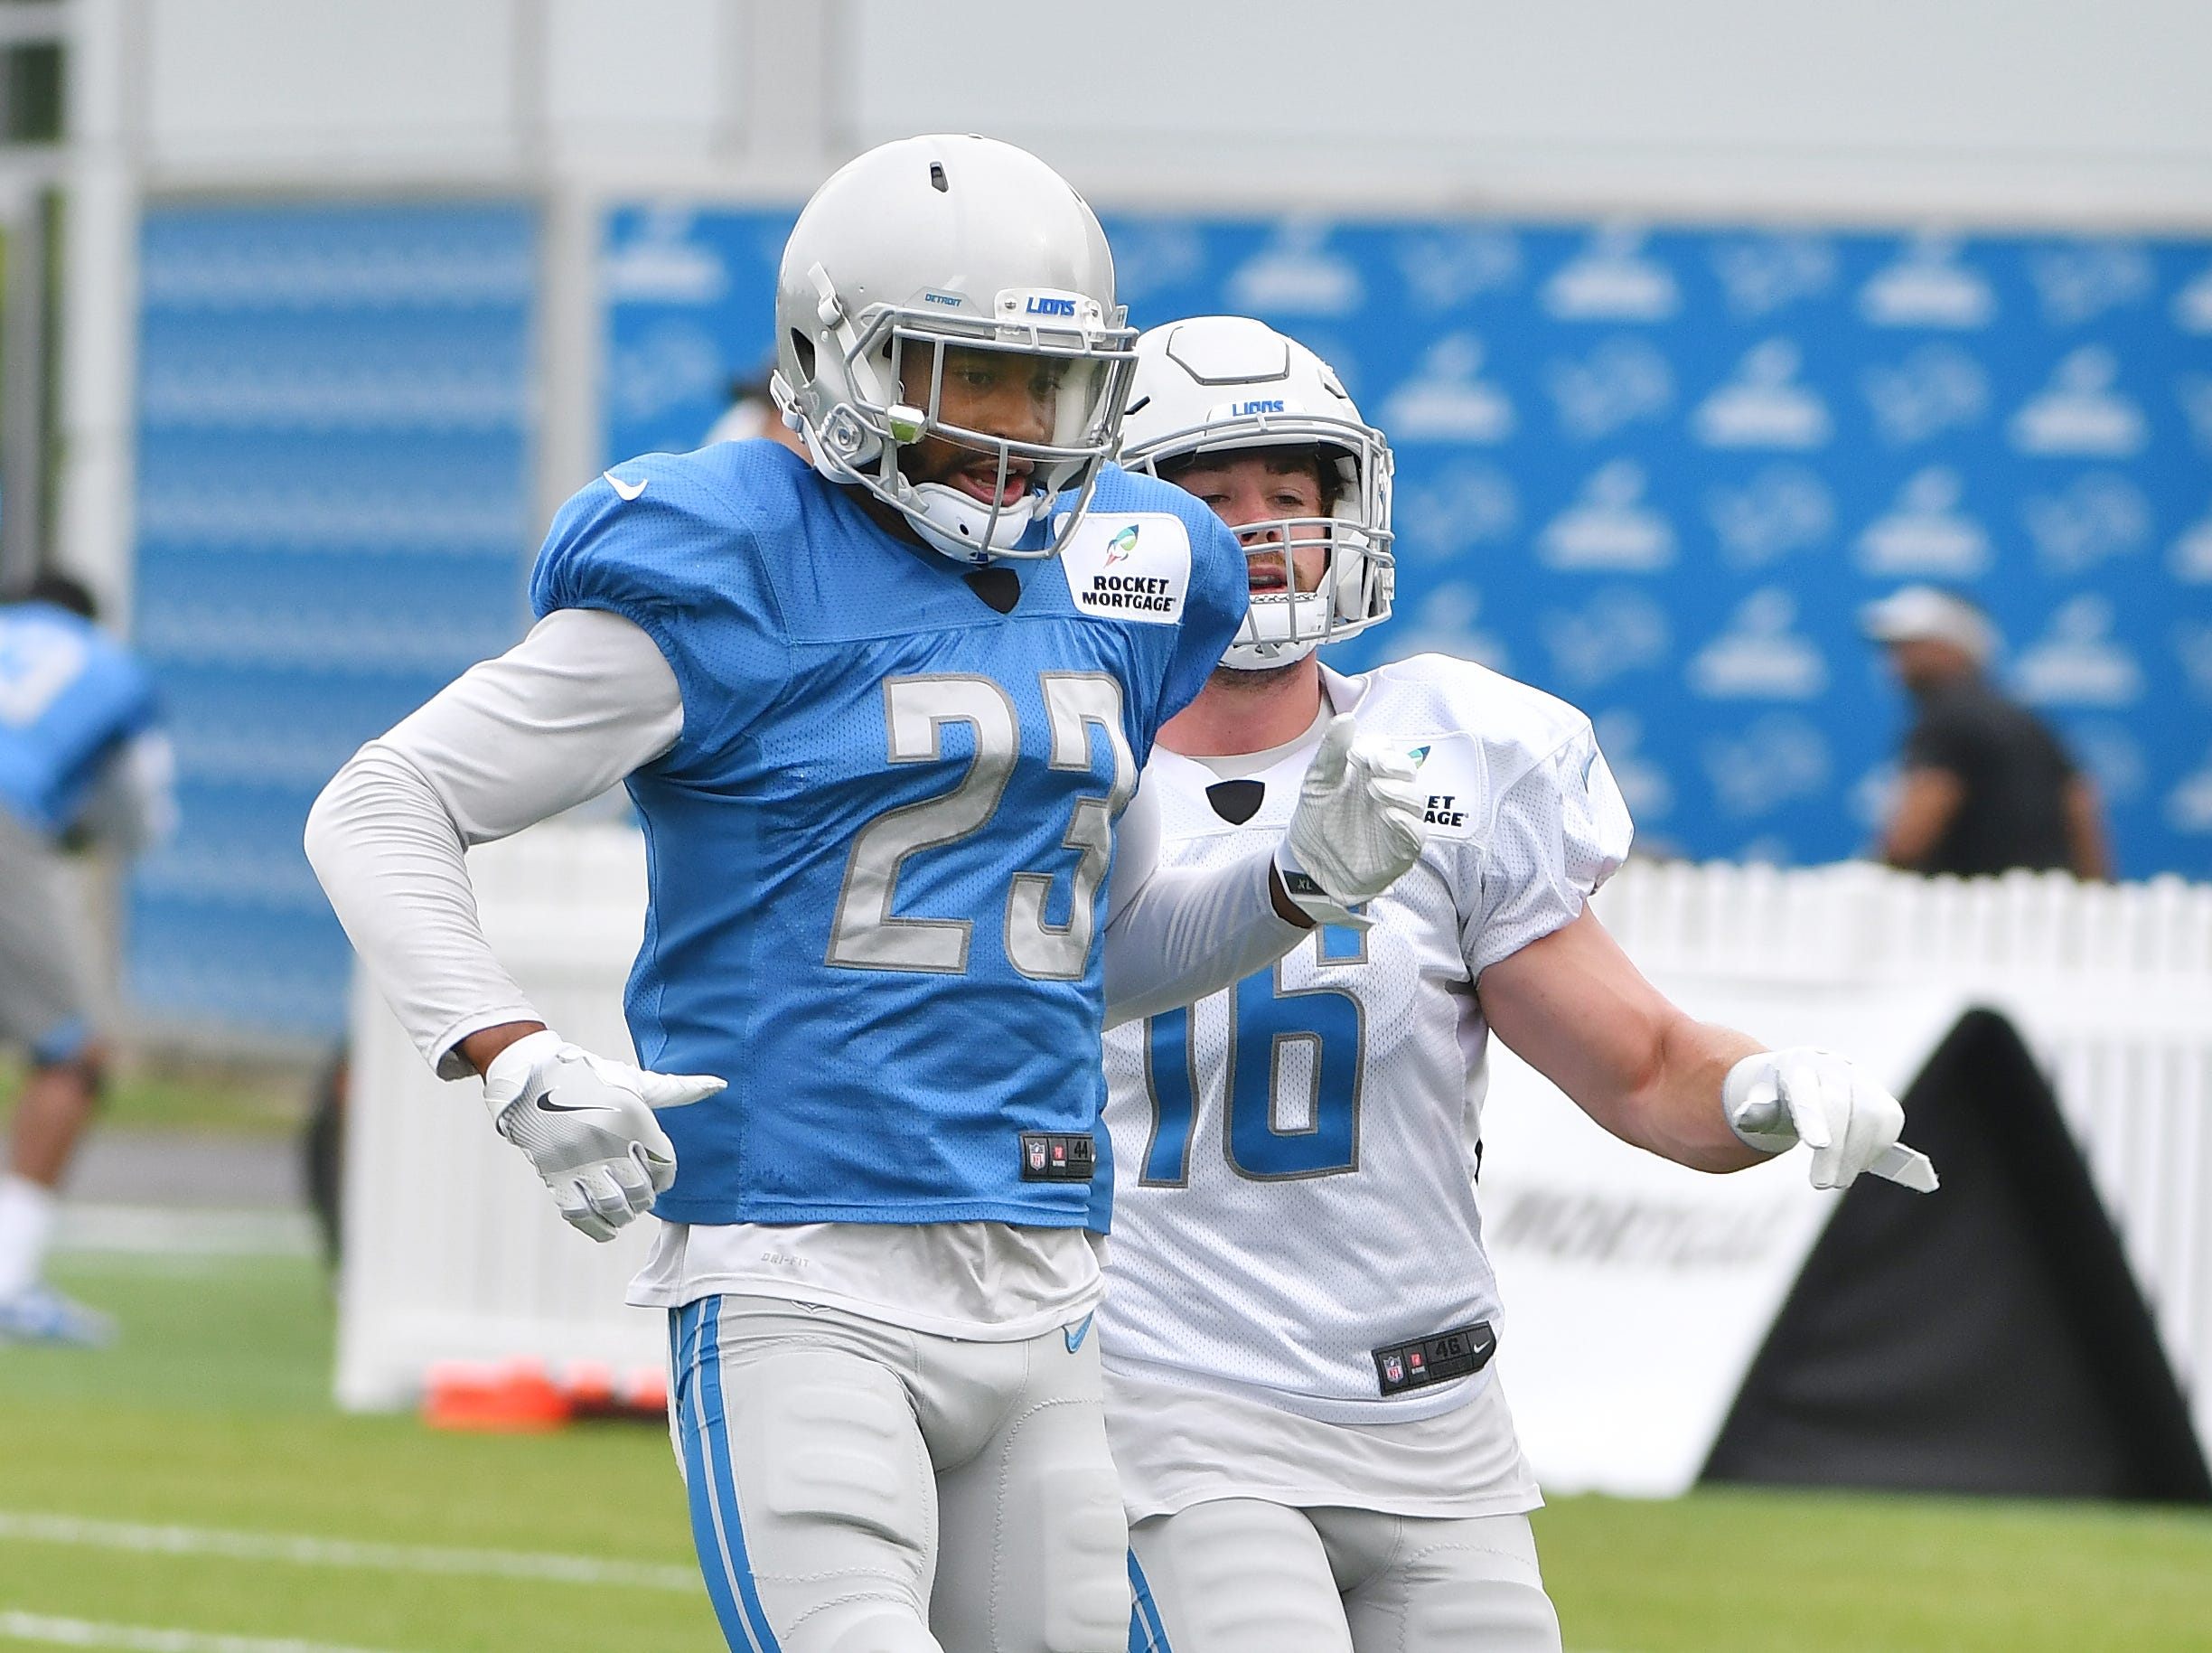 Lions cornerback Darius Slay and wide receiver Jace Billingsley work during a drill involving bursting off the line of scrimmage against a defender.